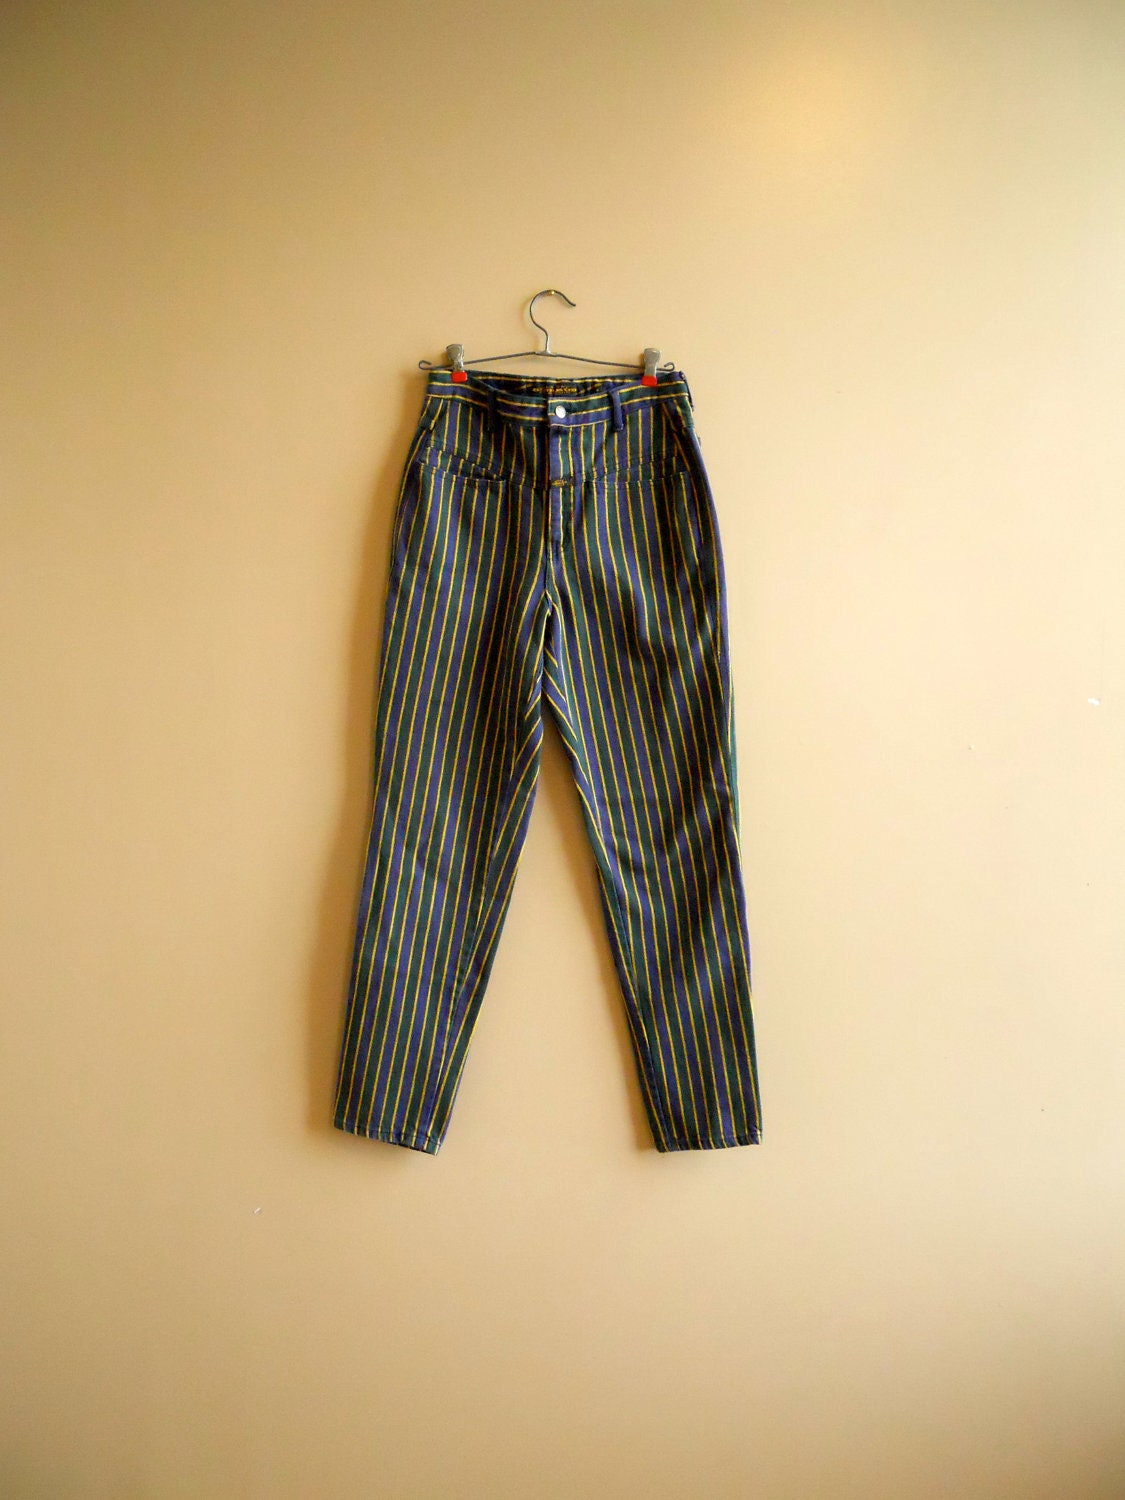 1990s 90s Striped Girbaud Jeans By Rabbitrabbitvintage